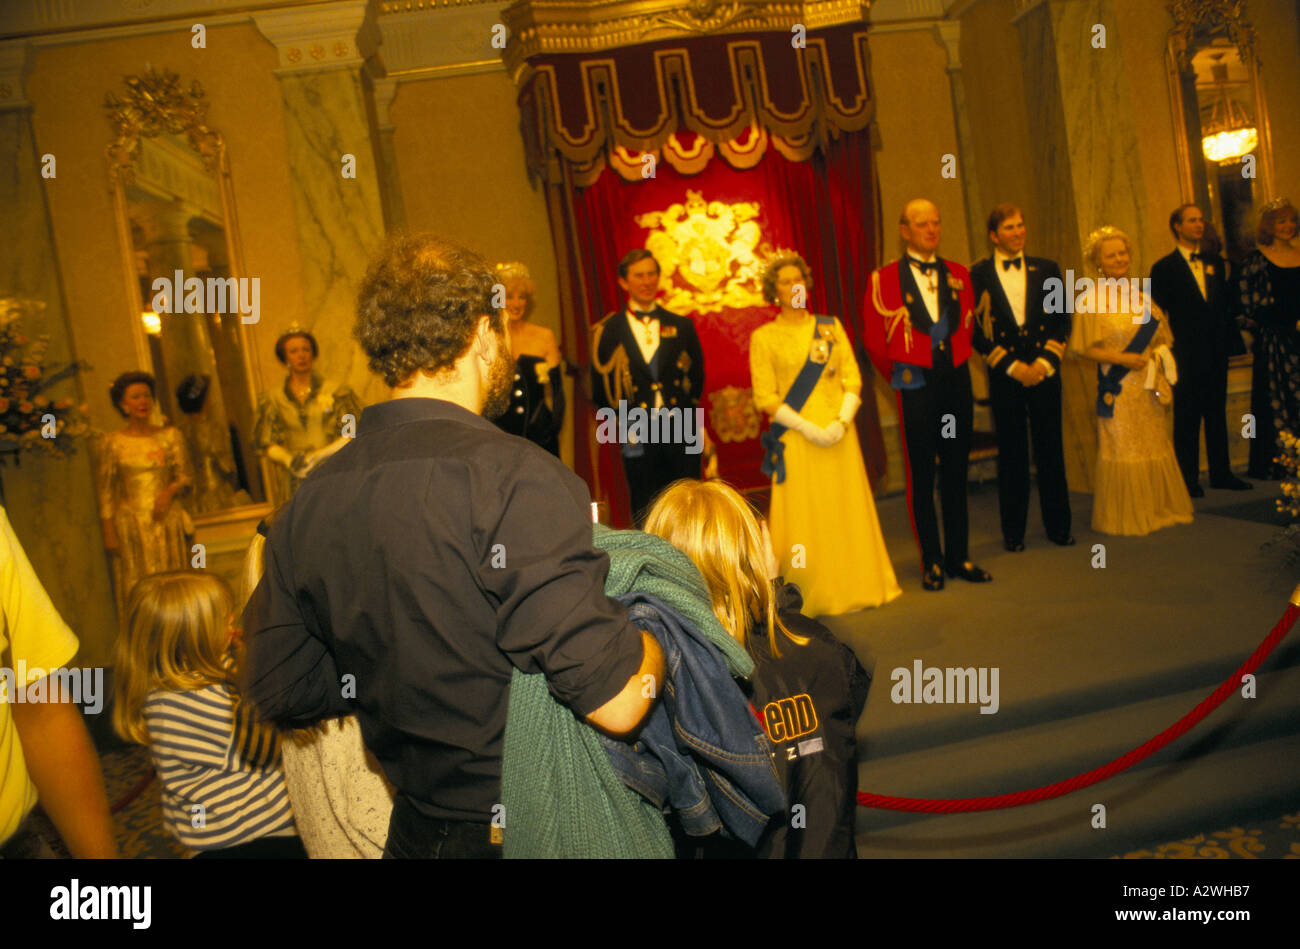 madame tussauds london visitors looking at wax works of the British royal family - Stock Image